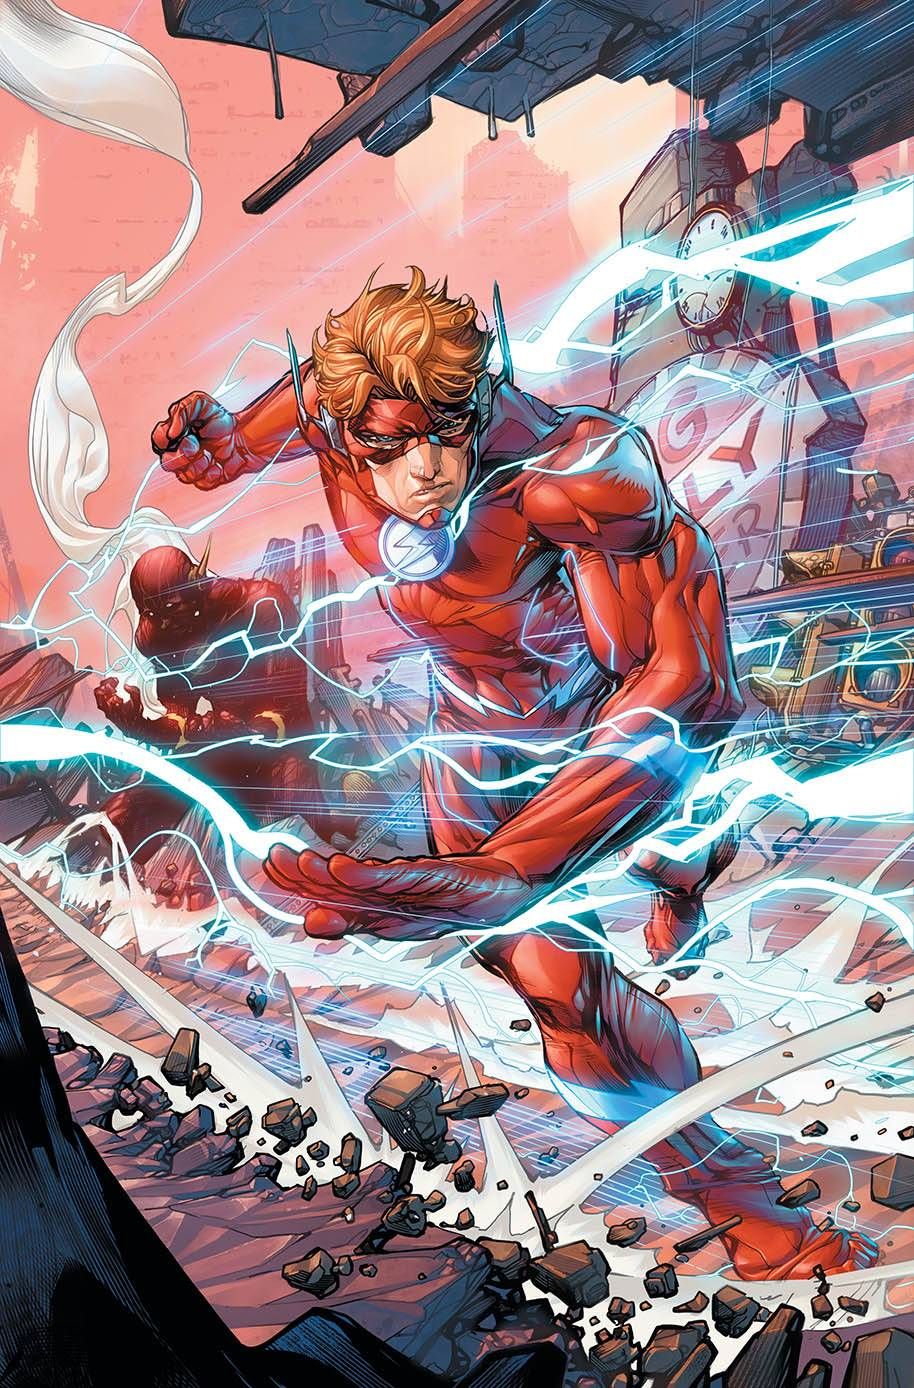 The Column: A Letter To DC Comics - Why, Wally West? A ...